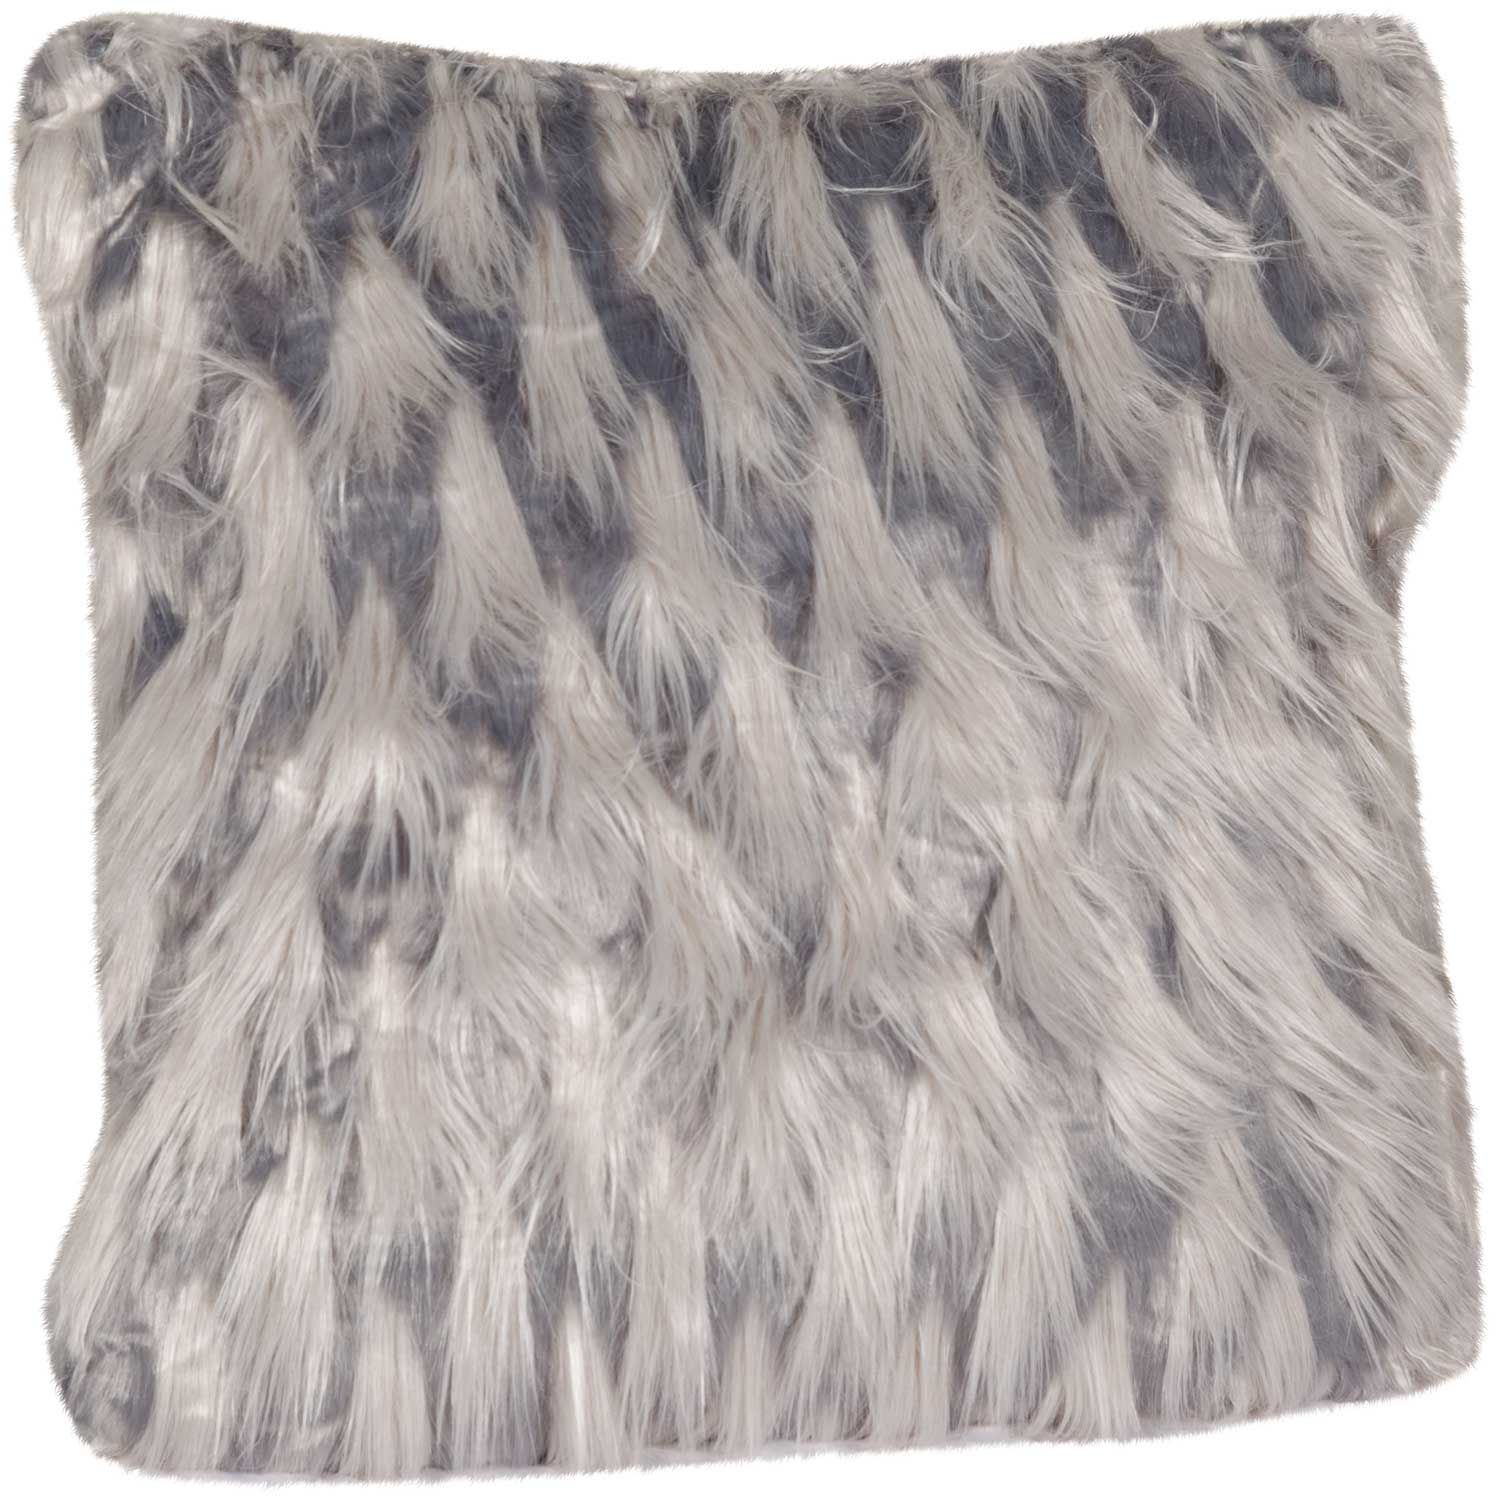 20x20 Zazu Gray Faux Fur Decorative Pillow